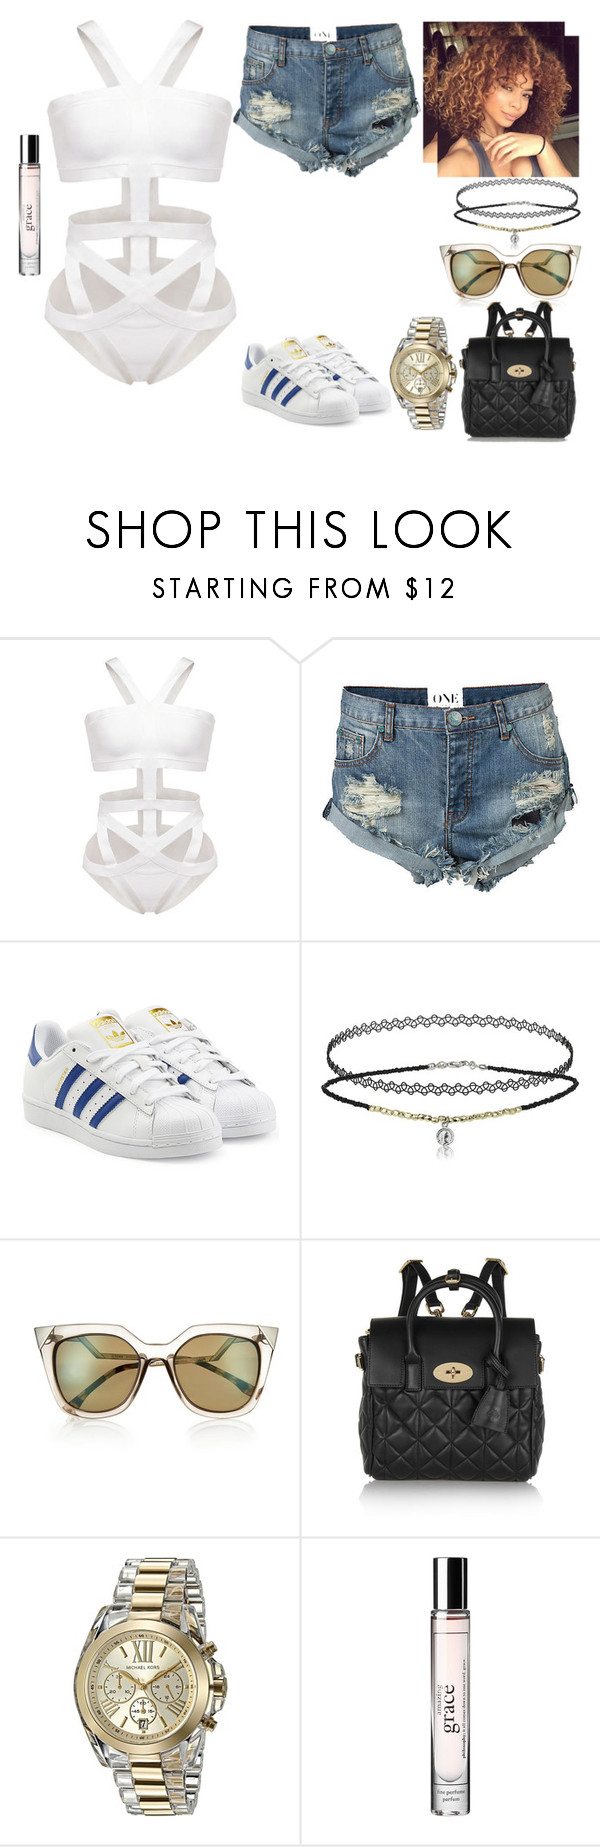 """""""Daddy made me fight it wasn't always right but he said girl it's your second amendment, oh, oh, oh, he always played it cool but daddy was no fool. #567"""" by stay-strong-18 ❤ liked on Polyvore featuring One Teaspoon, adidas Originals, Fendi, Mulberry, Michael Kors and philosophy"""